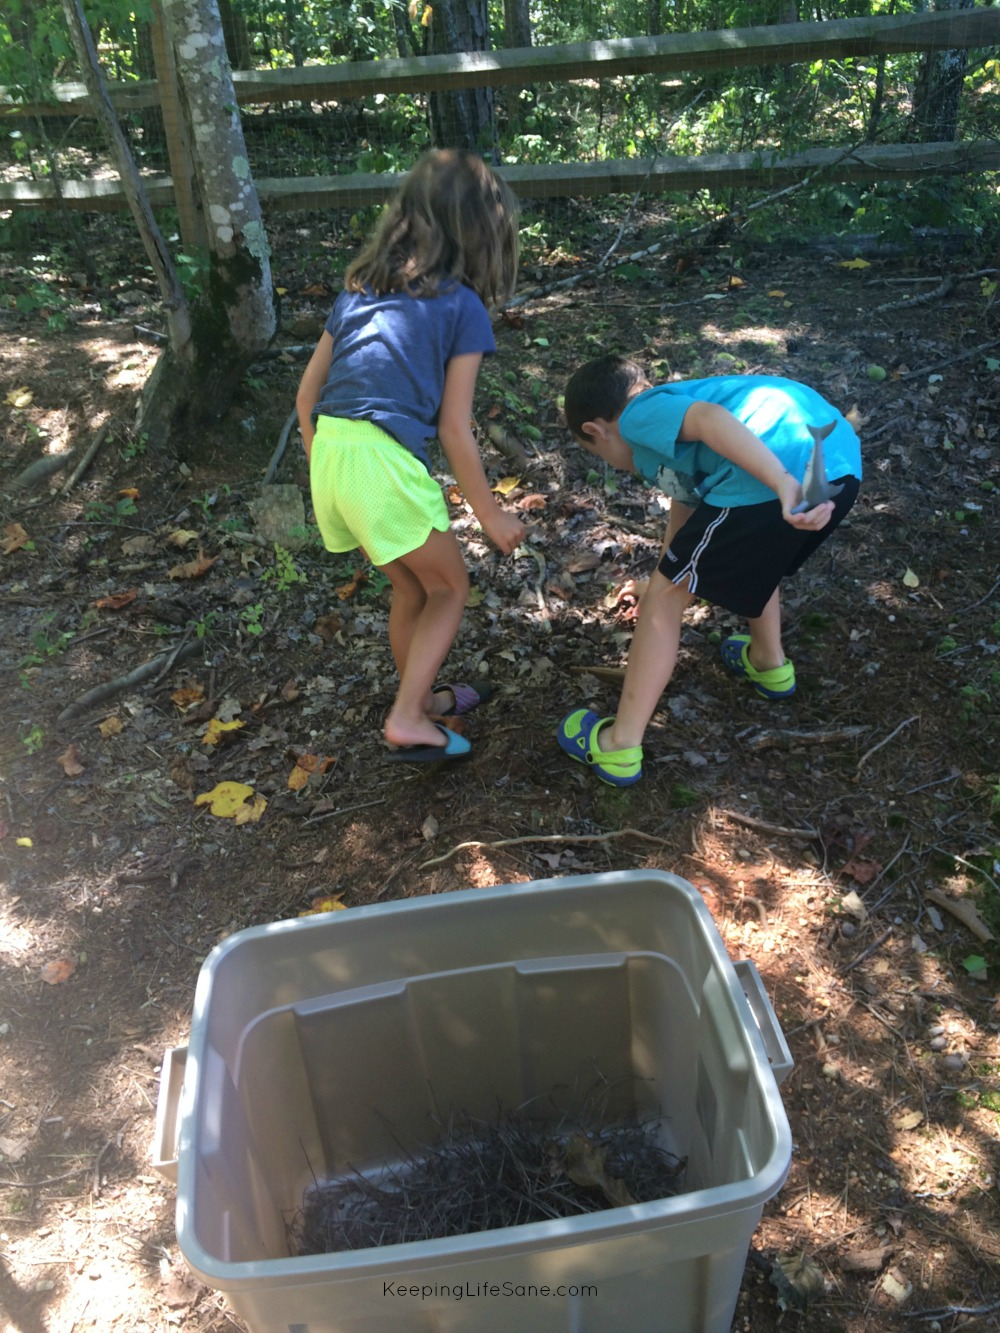 A girl and a boy in a wooded area picking up dried leaves and sticks.